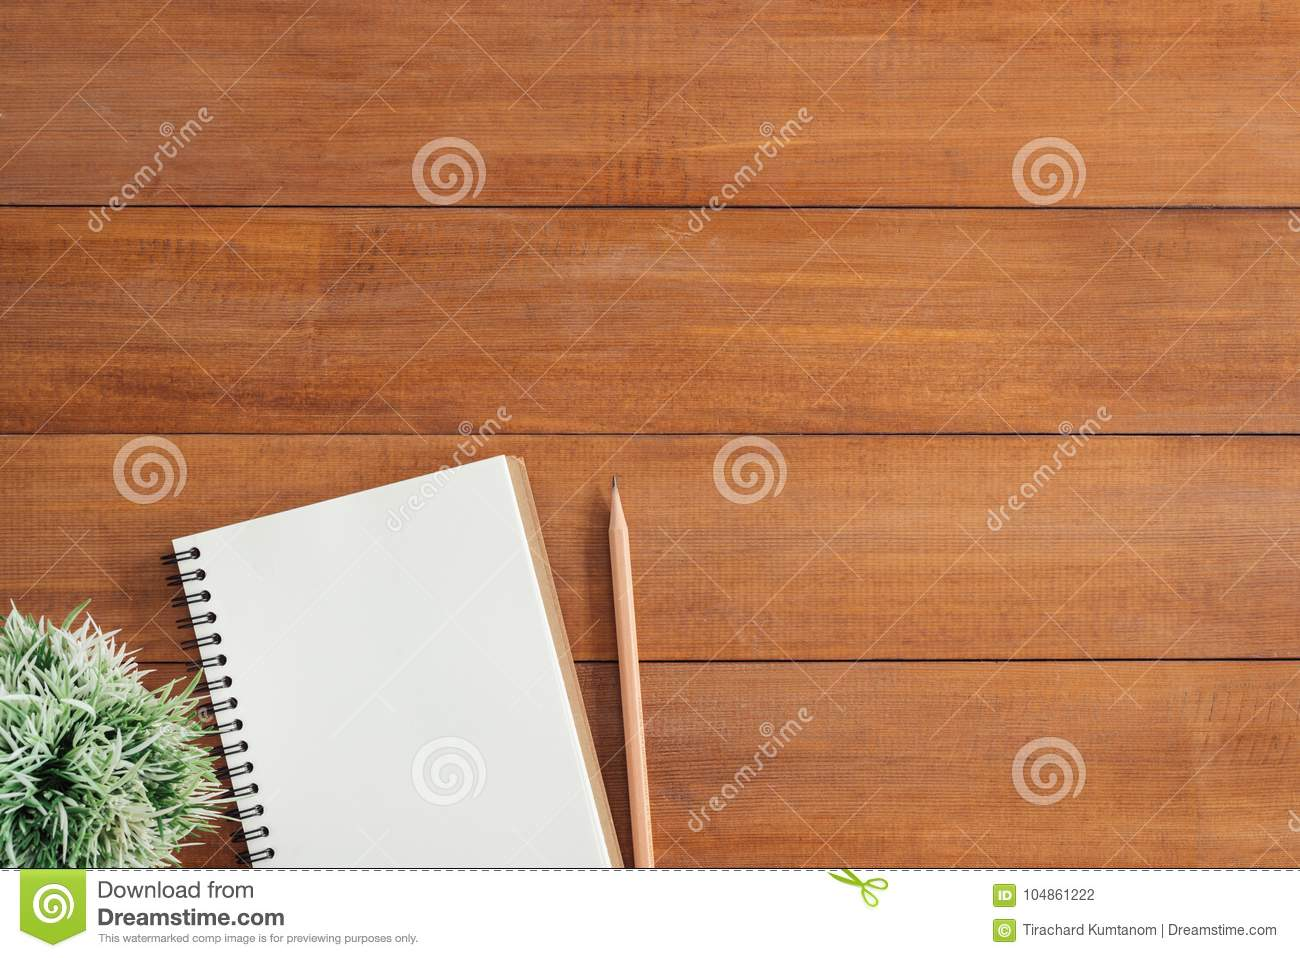 Creative flat lay photo of workspace desk. Office desk wooden table background with open mock up notebooks and pens.